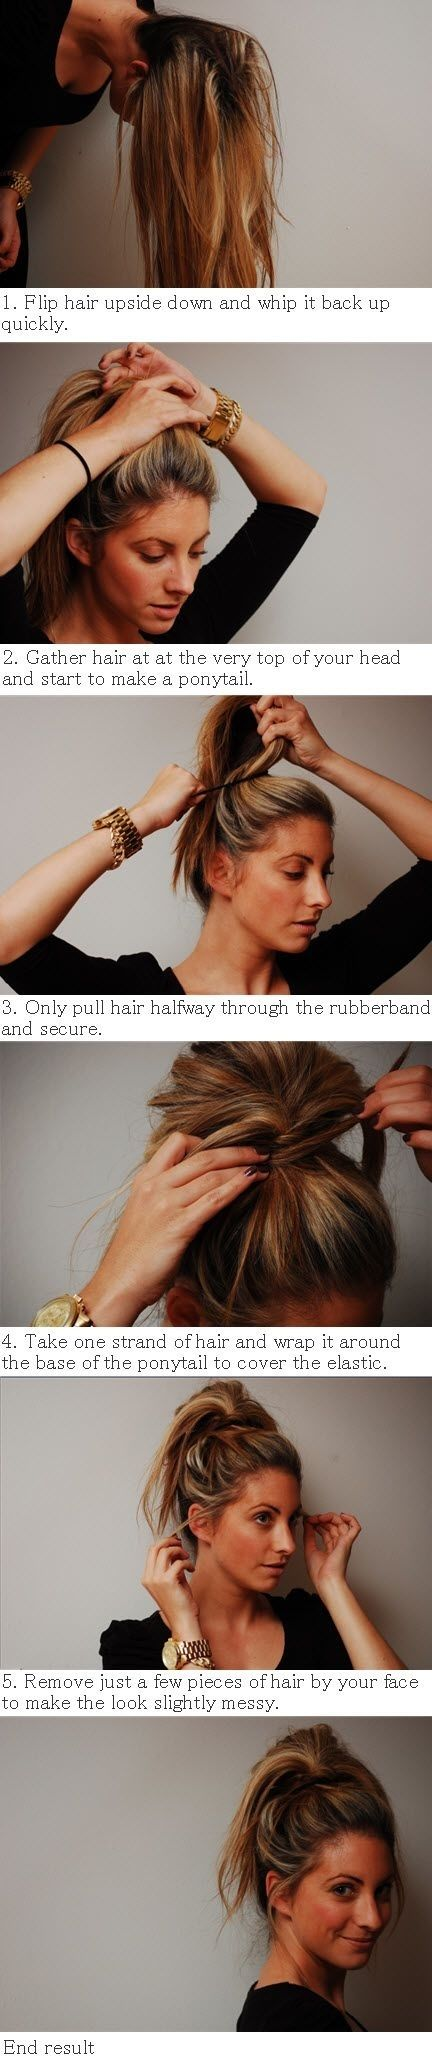 25 Summer hair style tutorials. These are very pretty and easy. I am trying them all!